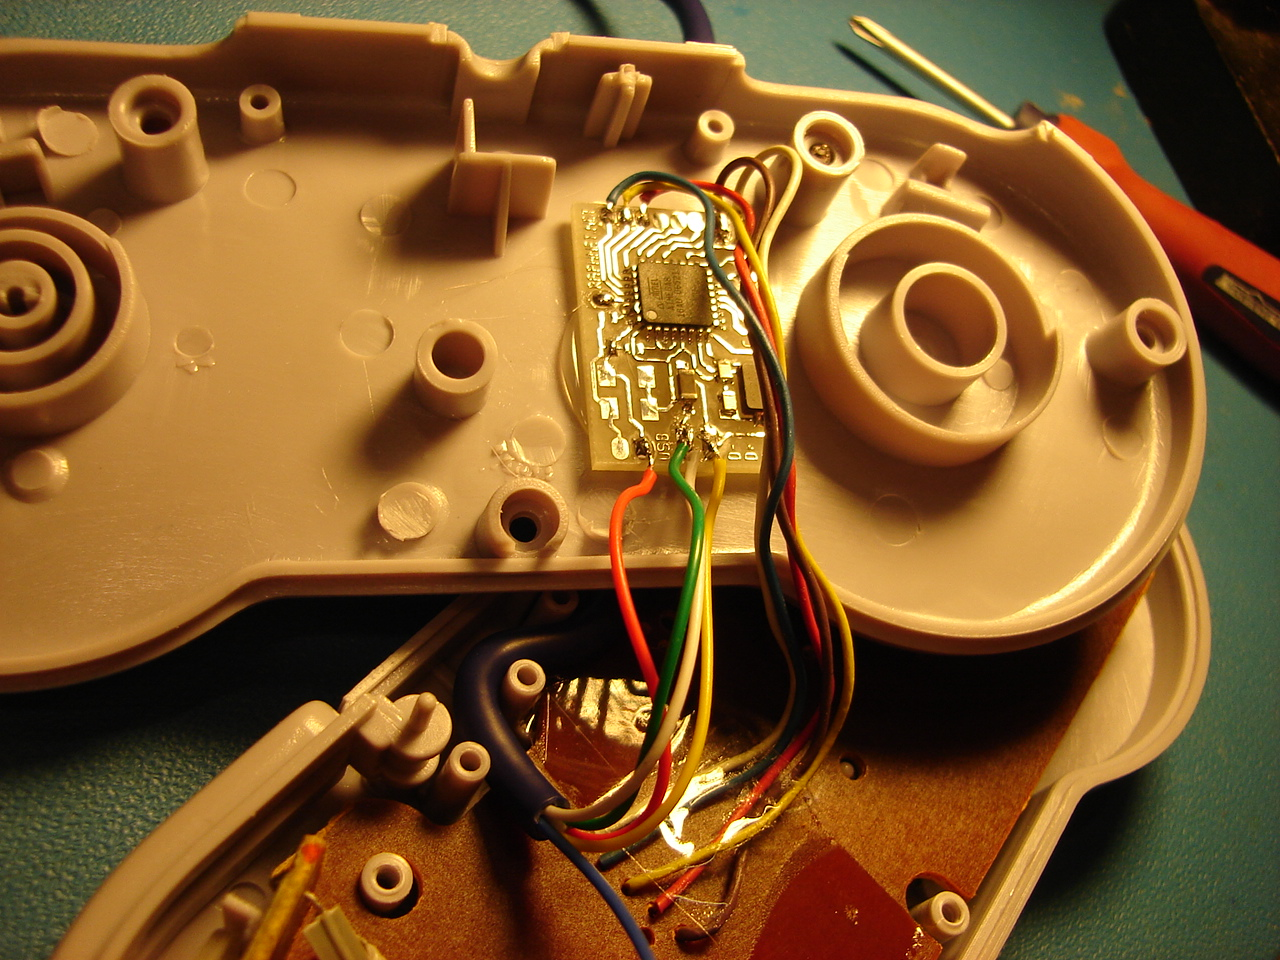 N64 Snes Nes Controller To Gamecube Wii Conversion Project Nintendo Wiring Schematic Inside An Clone